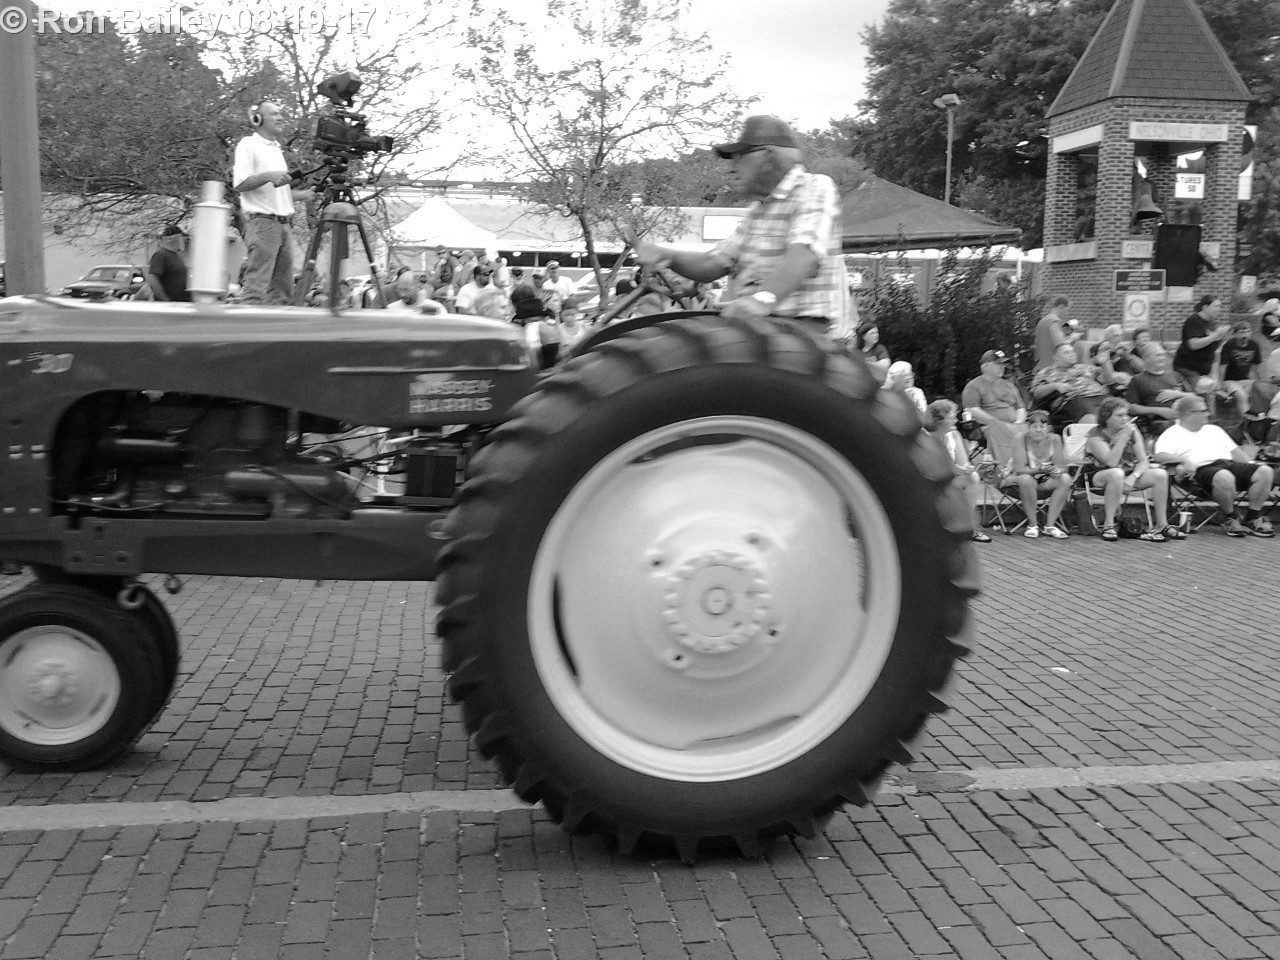 Parade of the Hills 2017 - Grand Parade BW 8-19-2017 7-15-31 PM